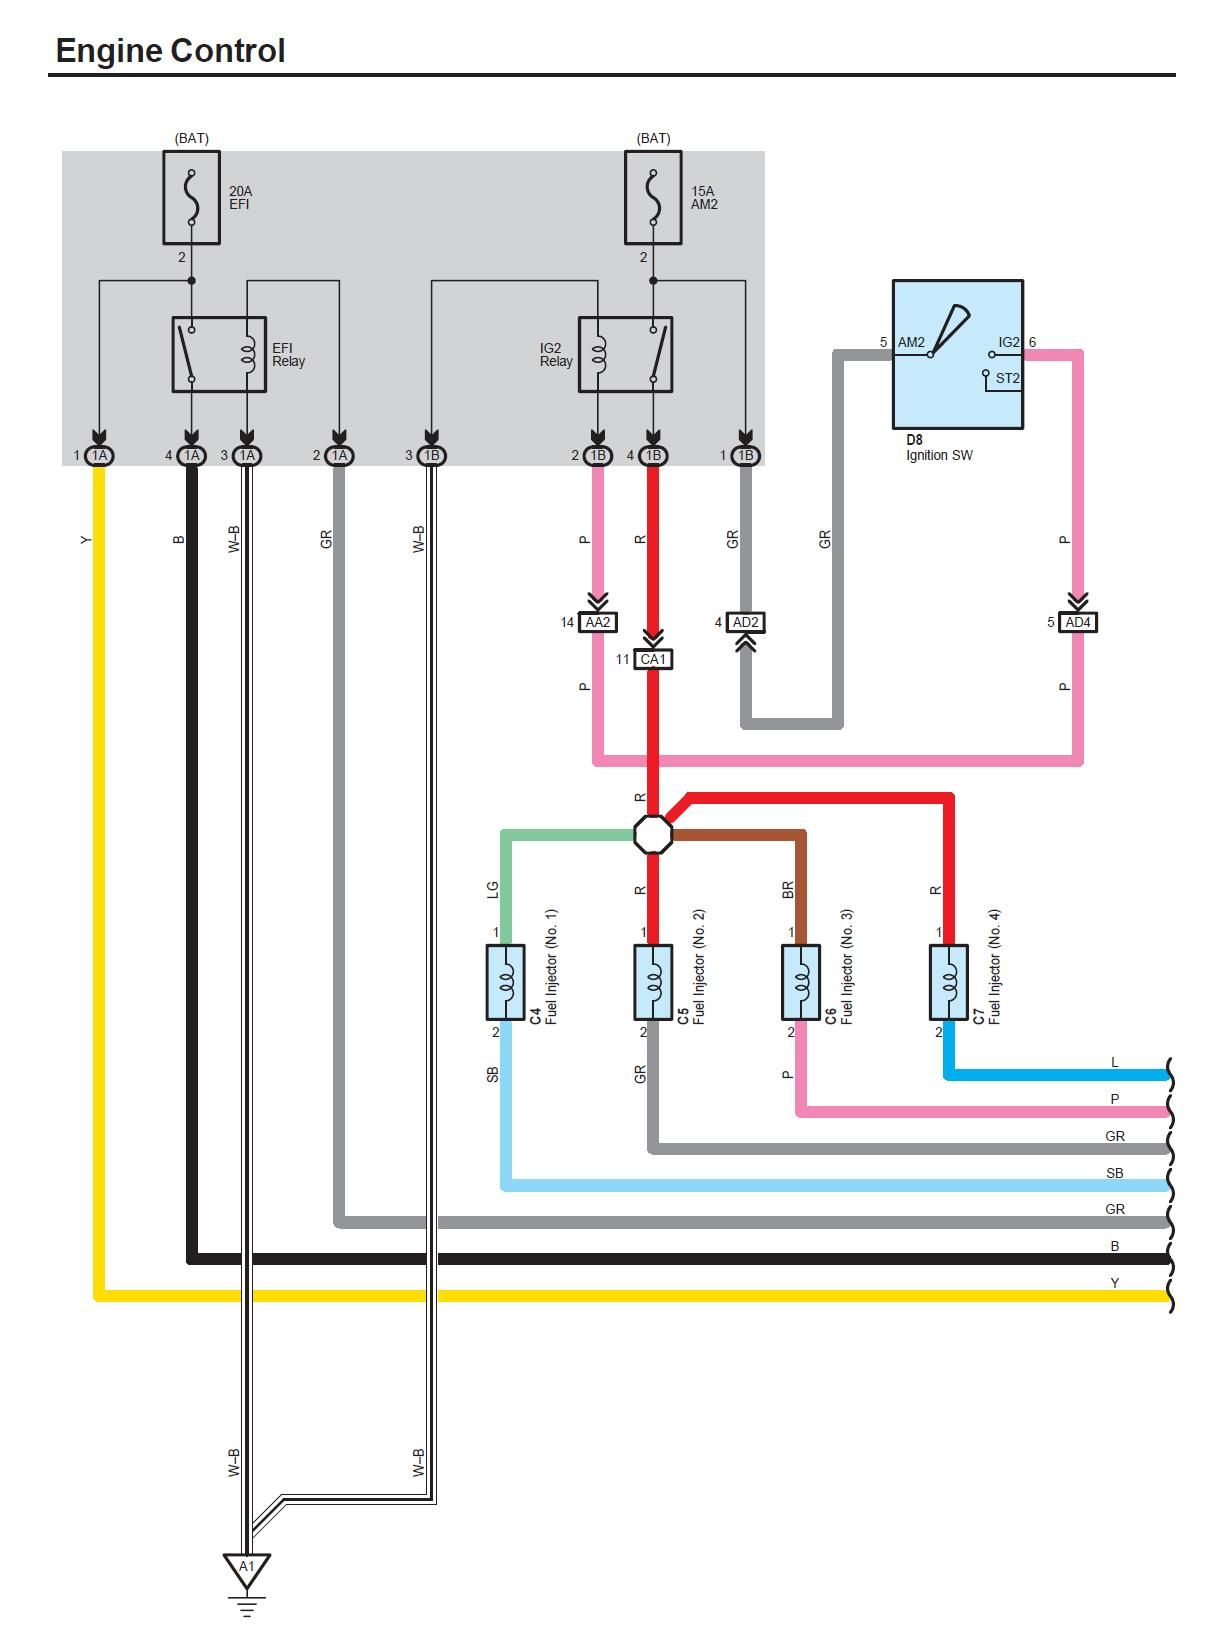 2007 yaris wiring diagram - fusebox and wiring diagram wires-deny -  wires-deny.chromata.it  wires-deny.chromata.it